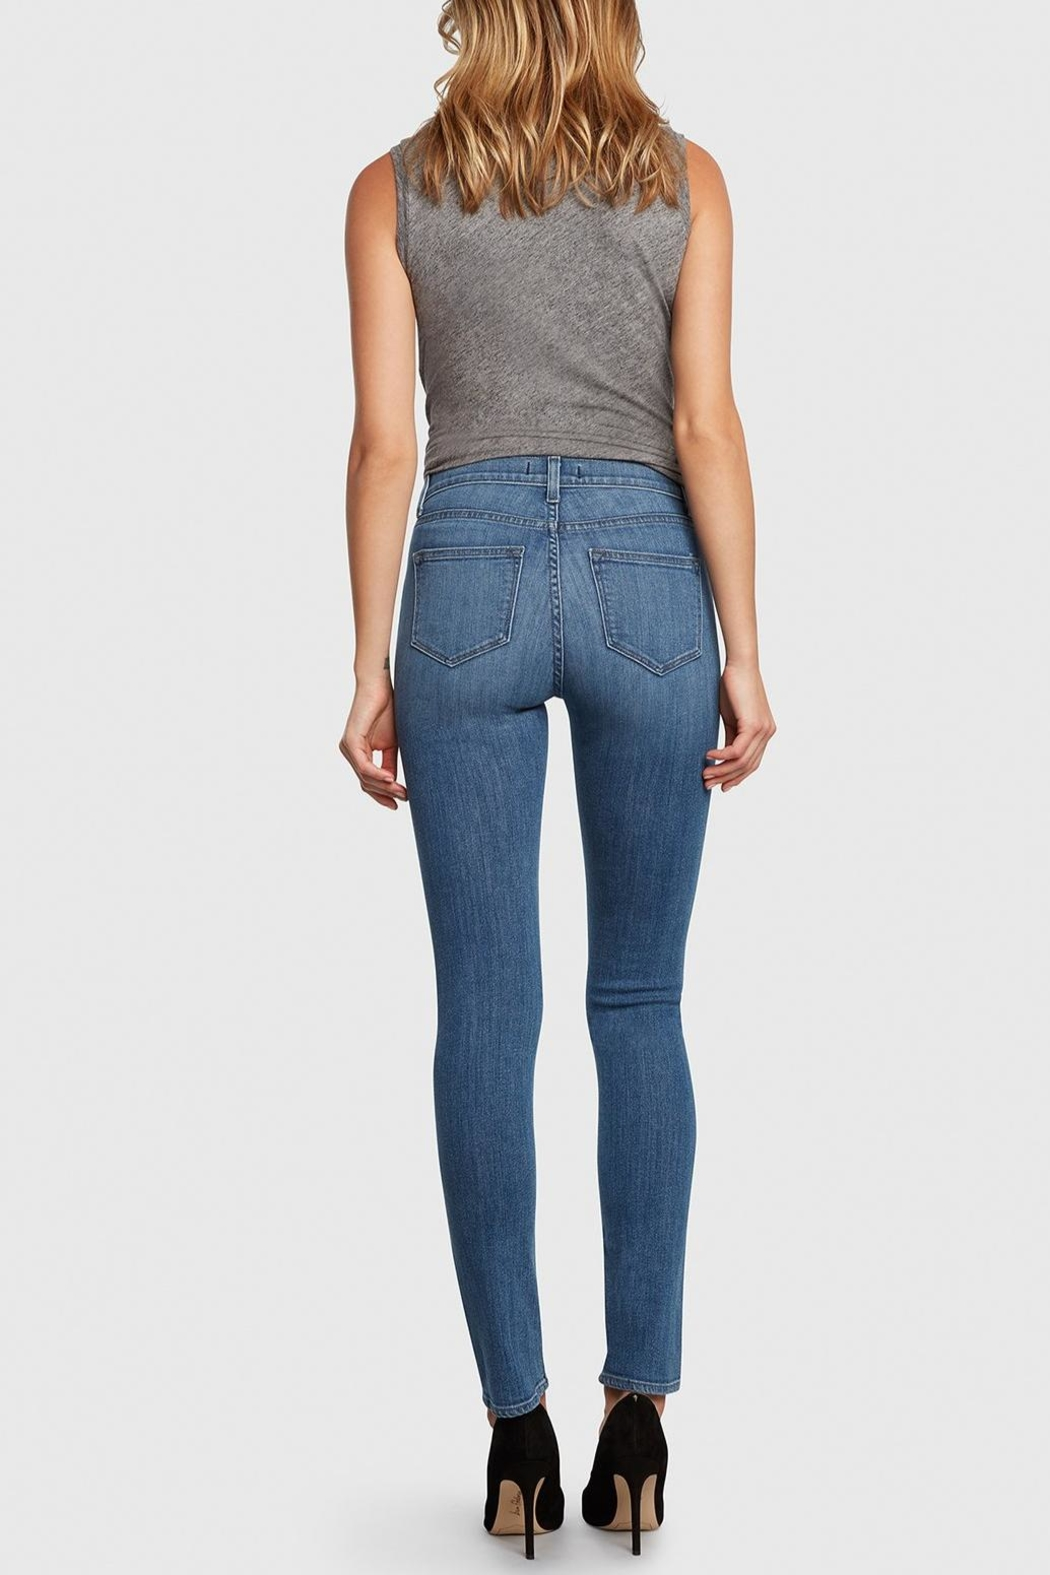 Principle Denim Medium-Wash High-Rise Cigarette - Side Cropped Image